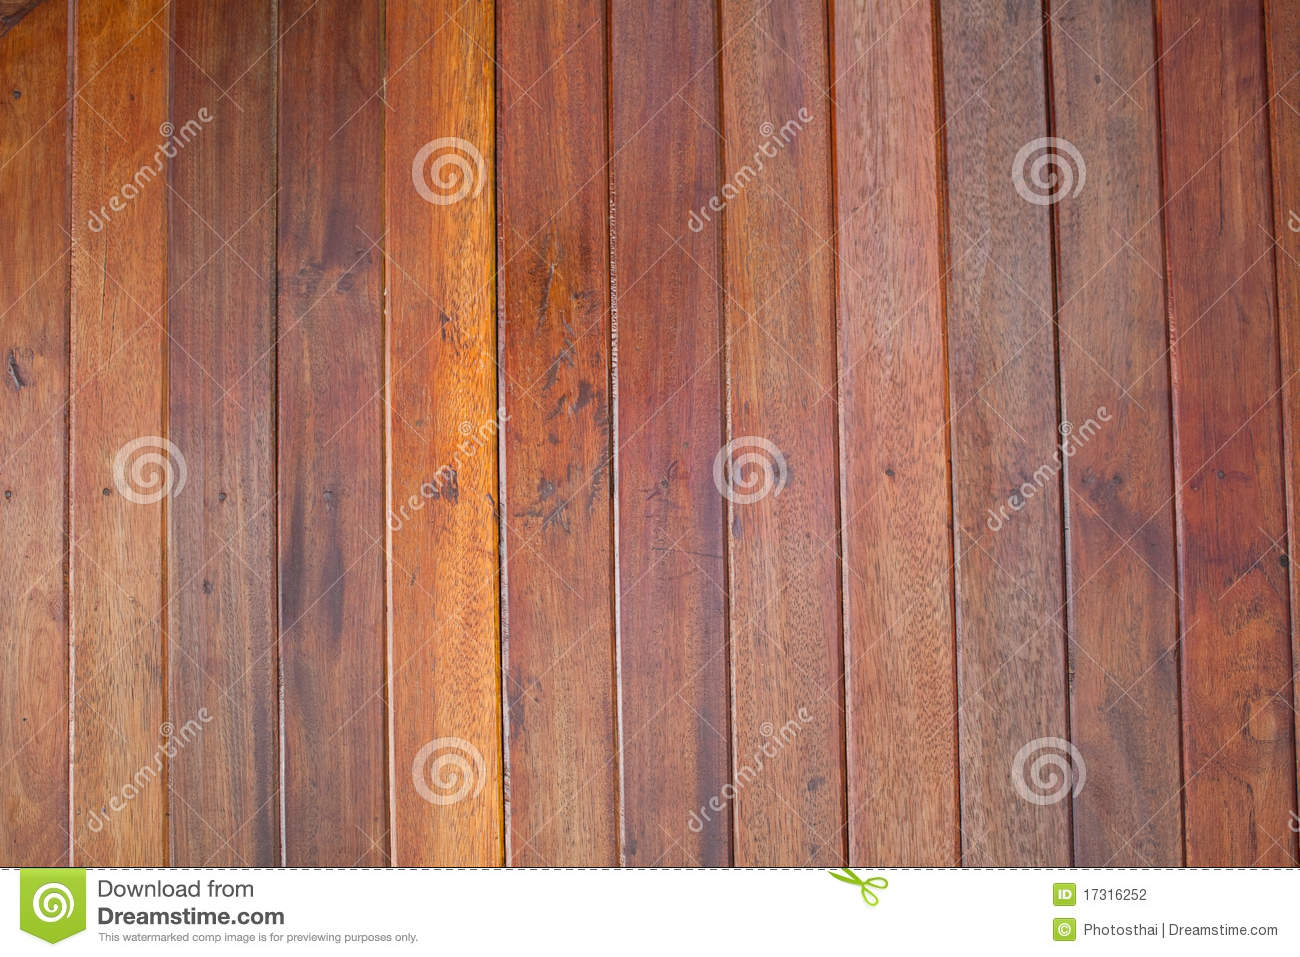 Ceiling Is Made From Wood Plank Stock Photo Image 17316252